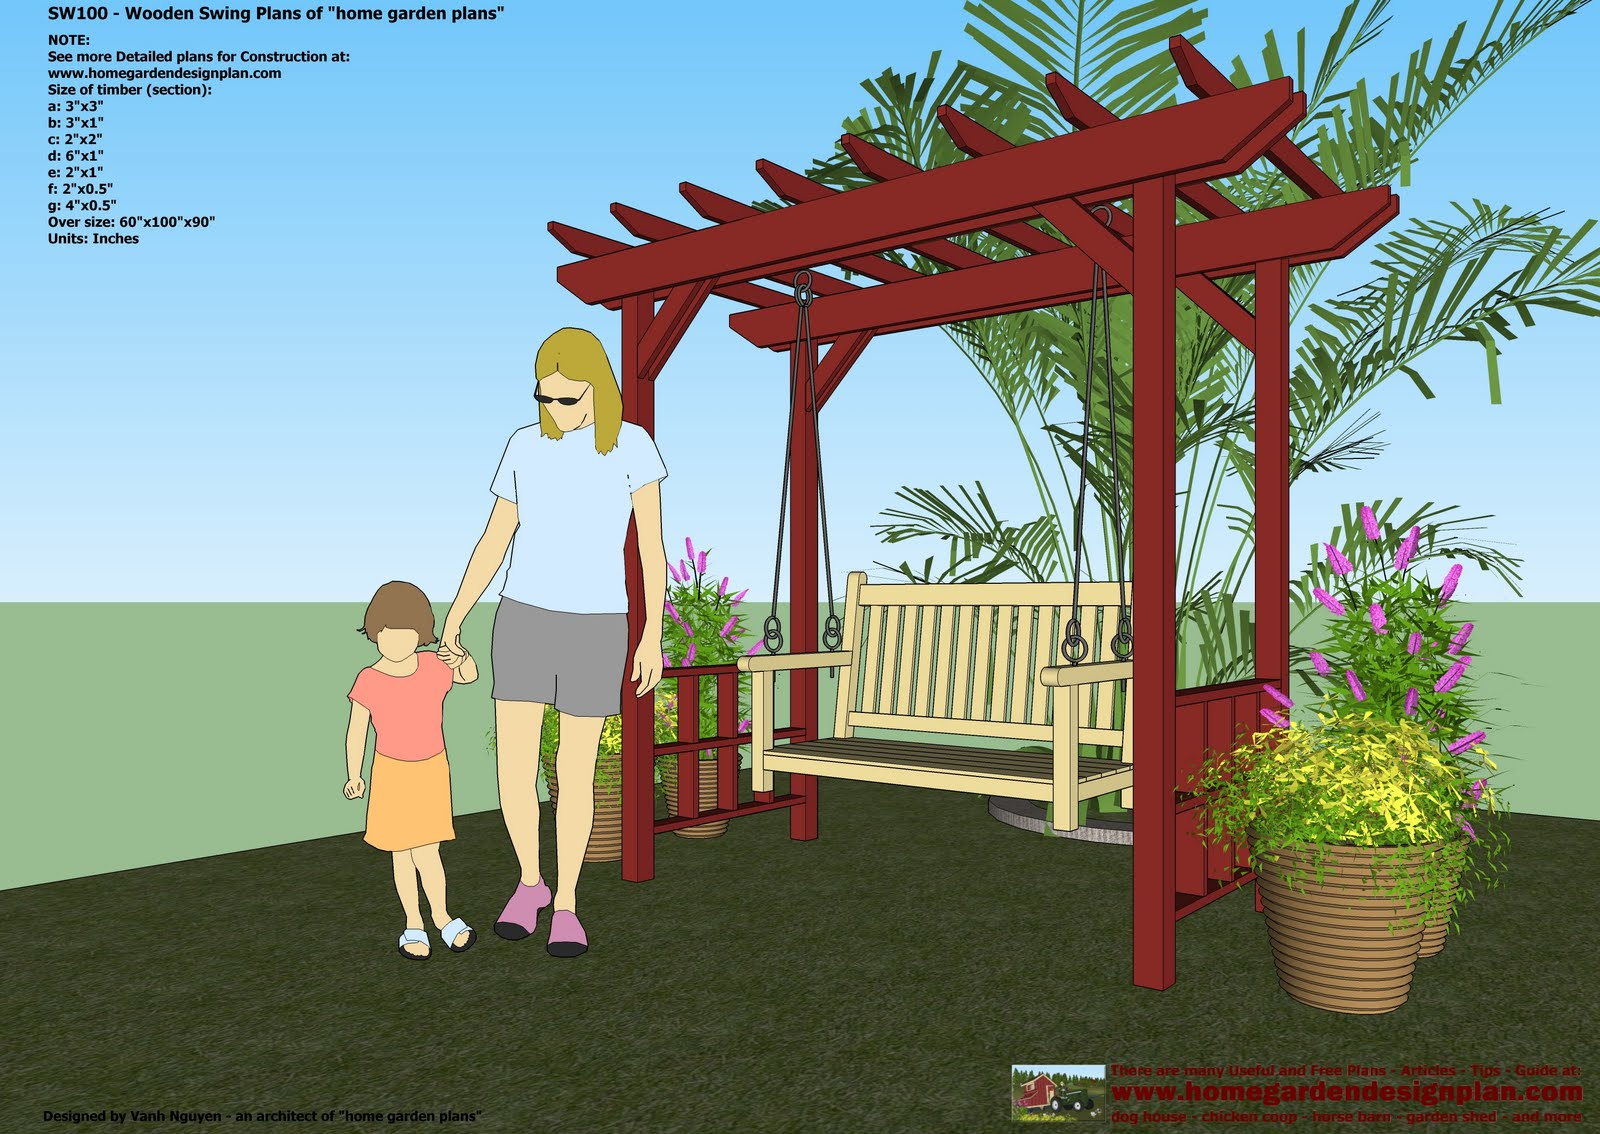 Home Garden Plans Sw100 Arbor Swing Plans Swing - garden swing designs